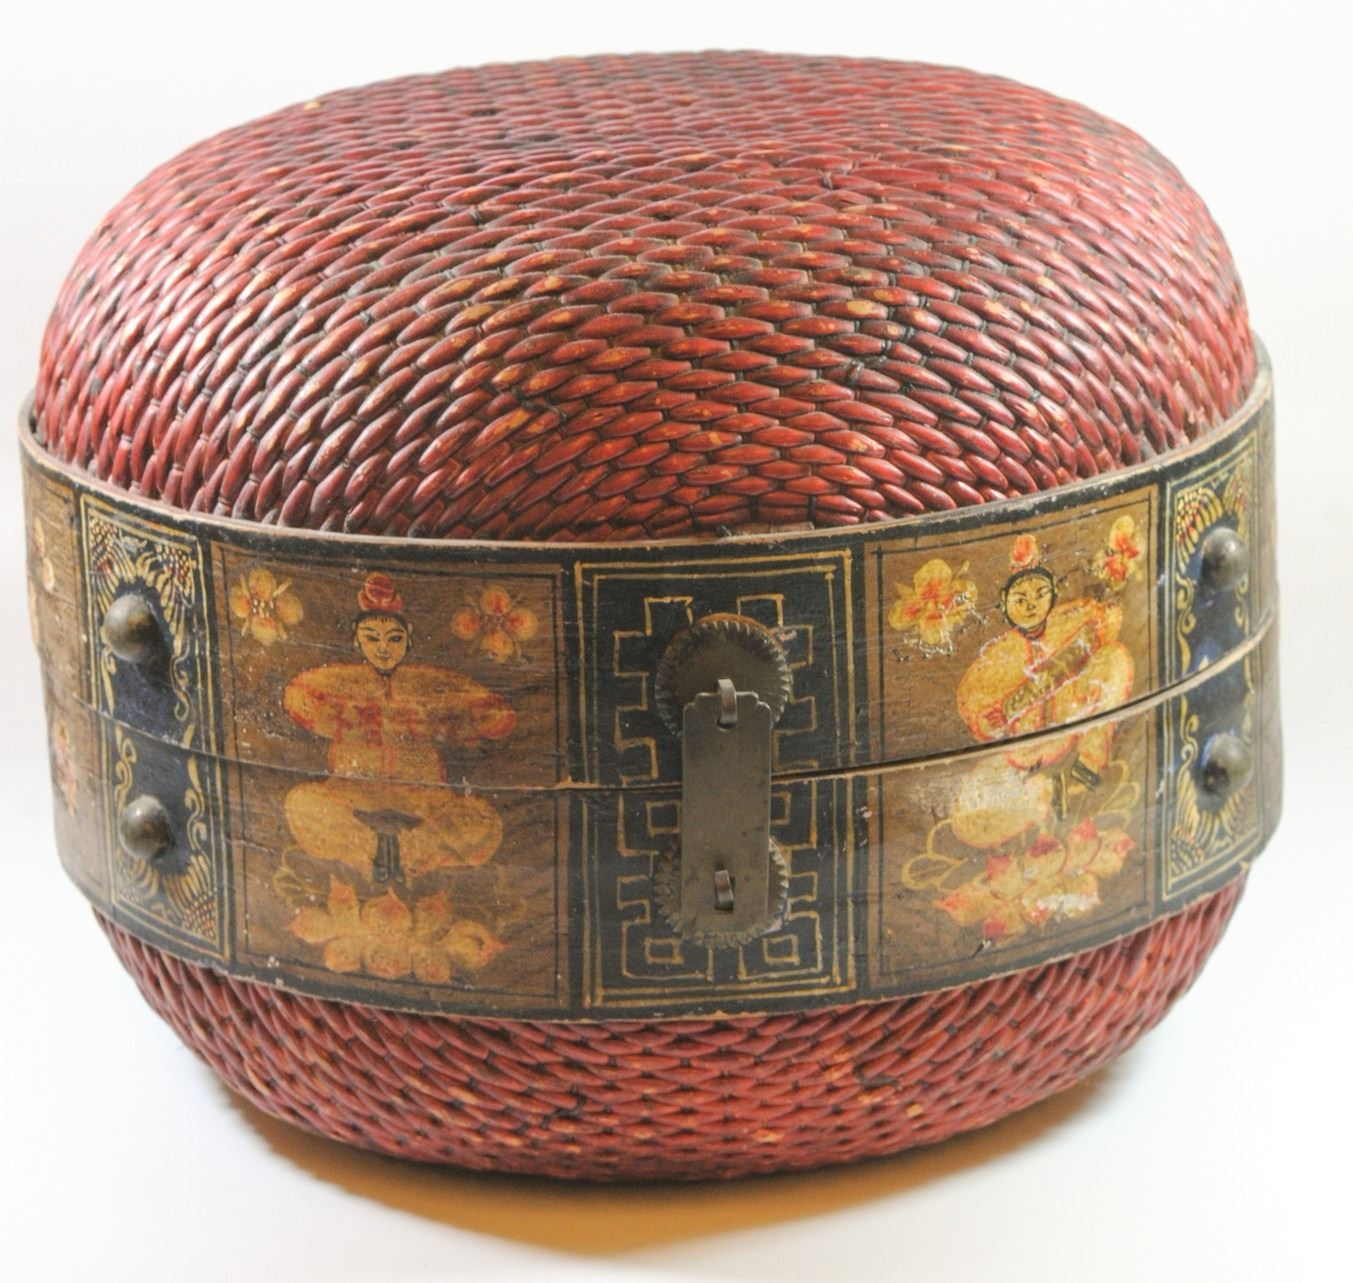 Superieur Image 1 : Old Chinese Storage Box ...